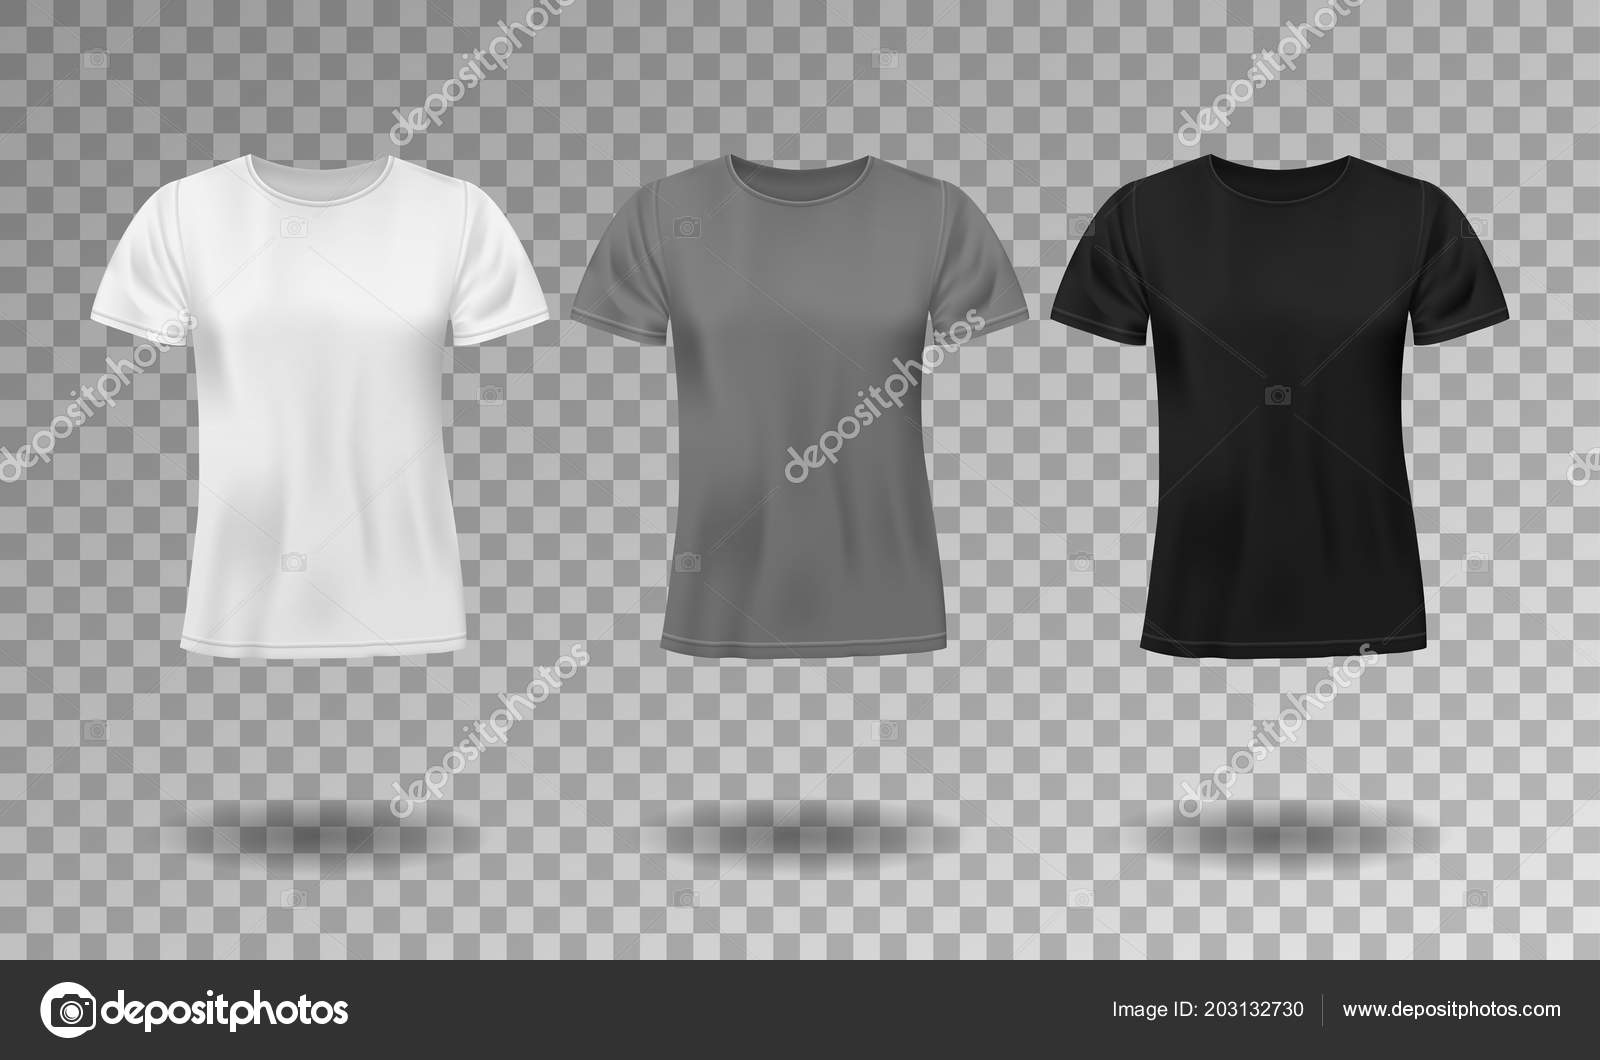 Black White And Gray Realistic Male T Shirt With Short Sleeves Blank Template Isolated Cotton Man Design Vector Illustration EPS 10